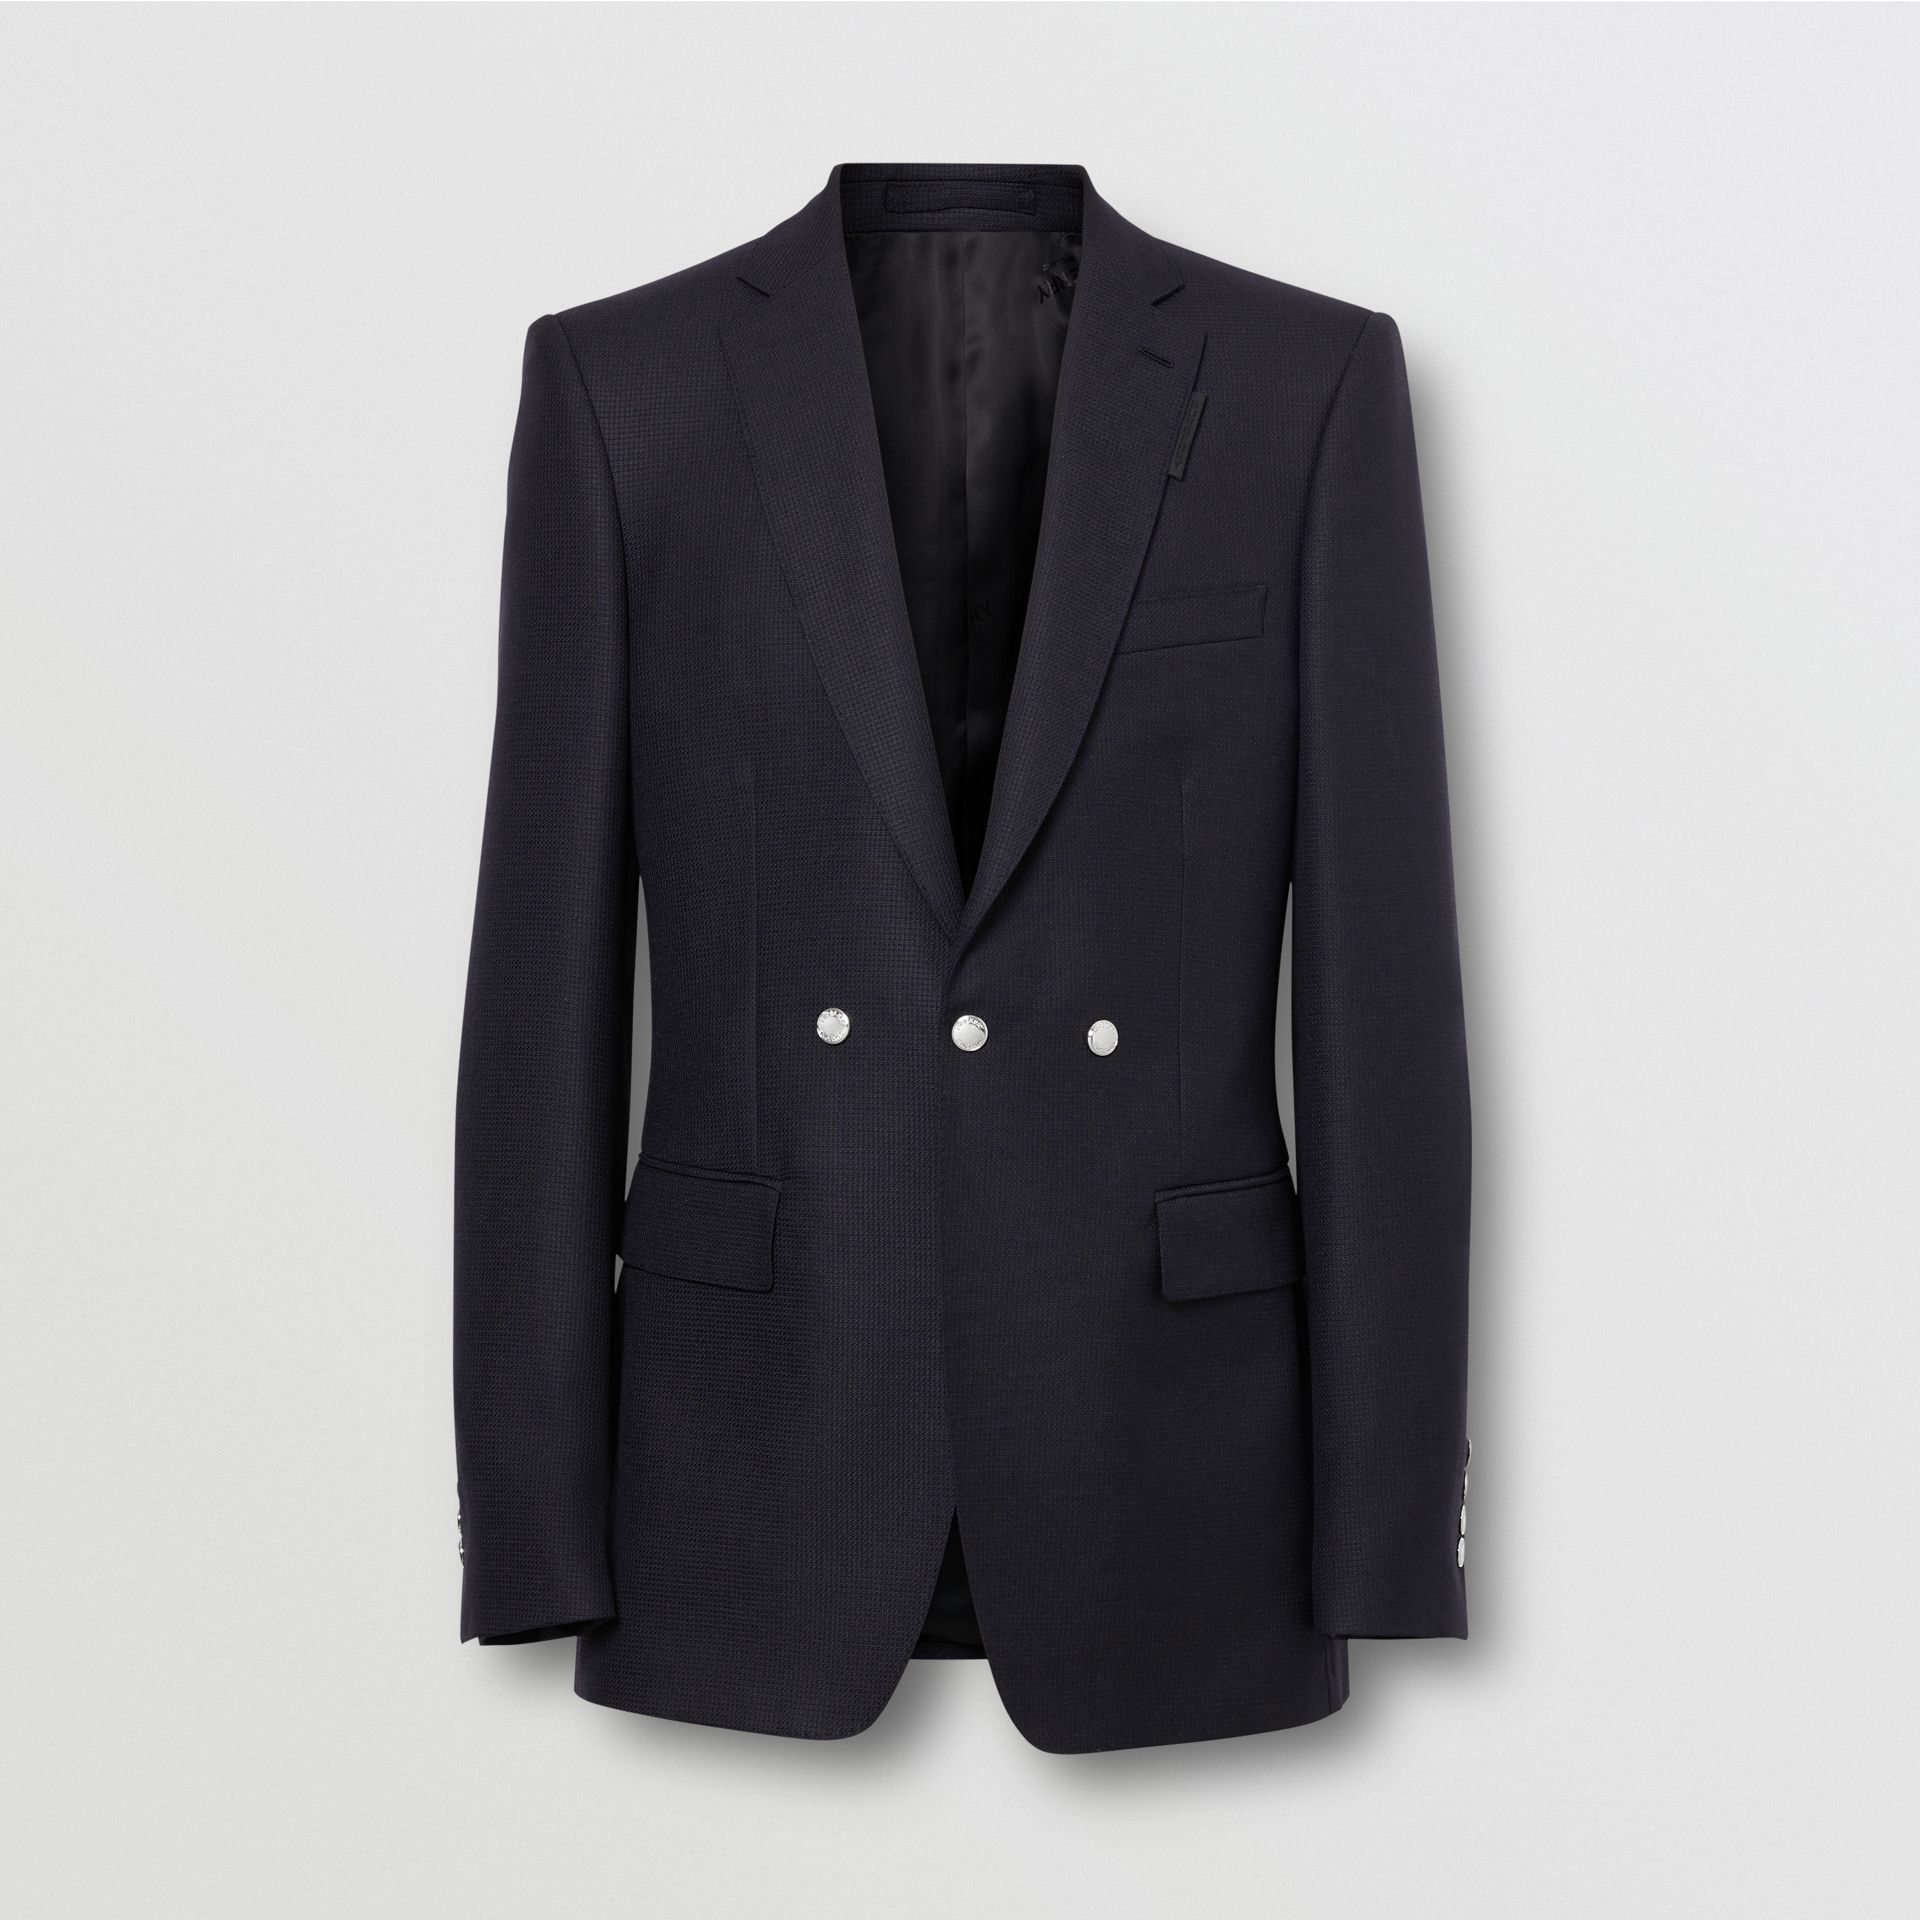 English Fit Triple Stud Wool Mohair Tailored Jacket in Midnight Blue - Men | Burberry Australia - gallery image 3